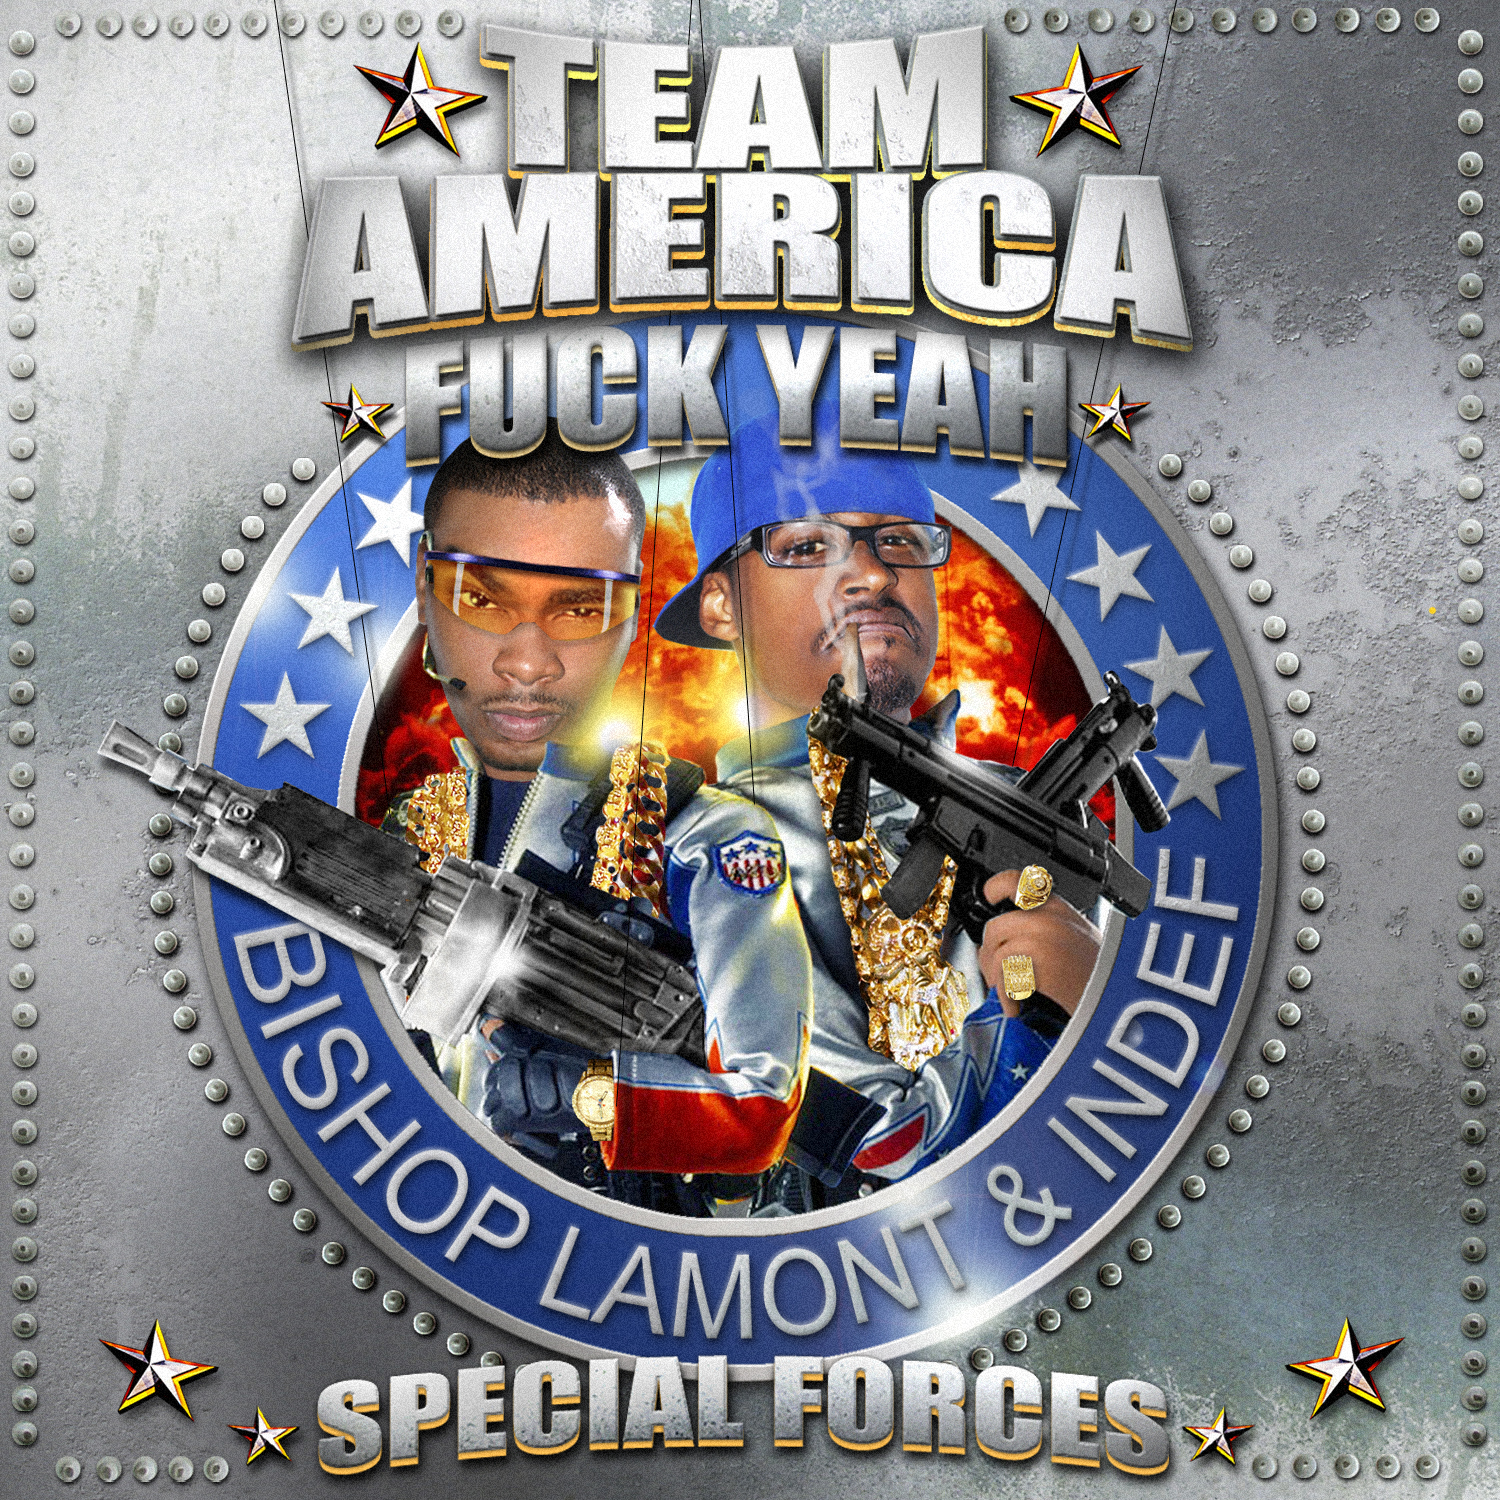 Team America Fuck Yeah_FRONT COVER.jpg